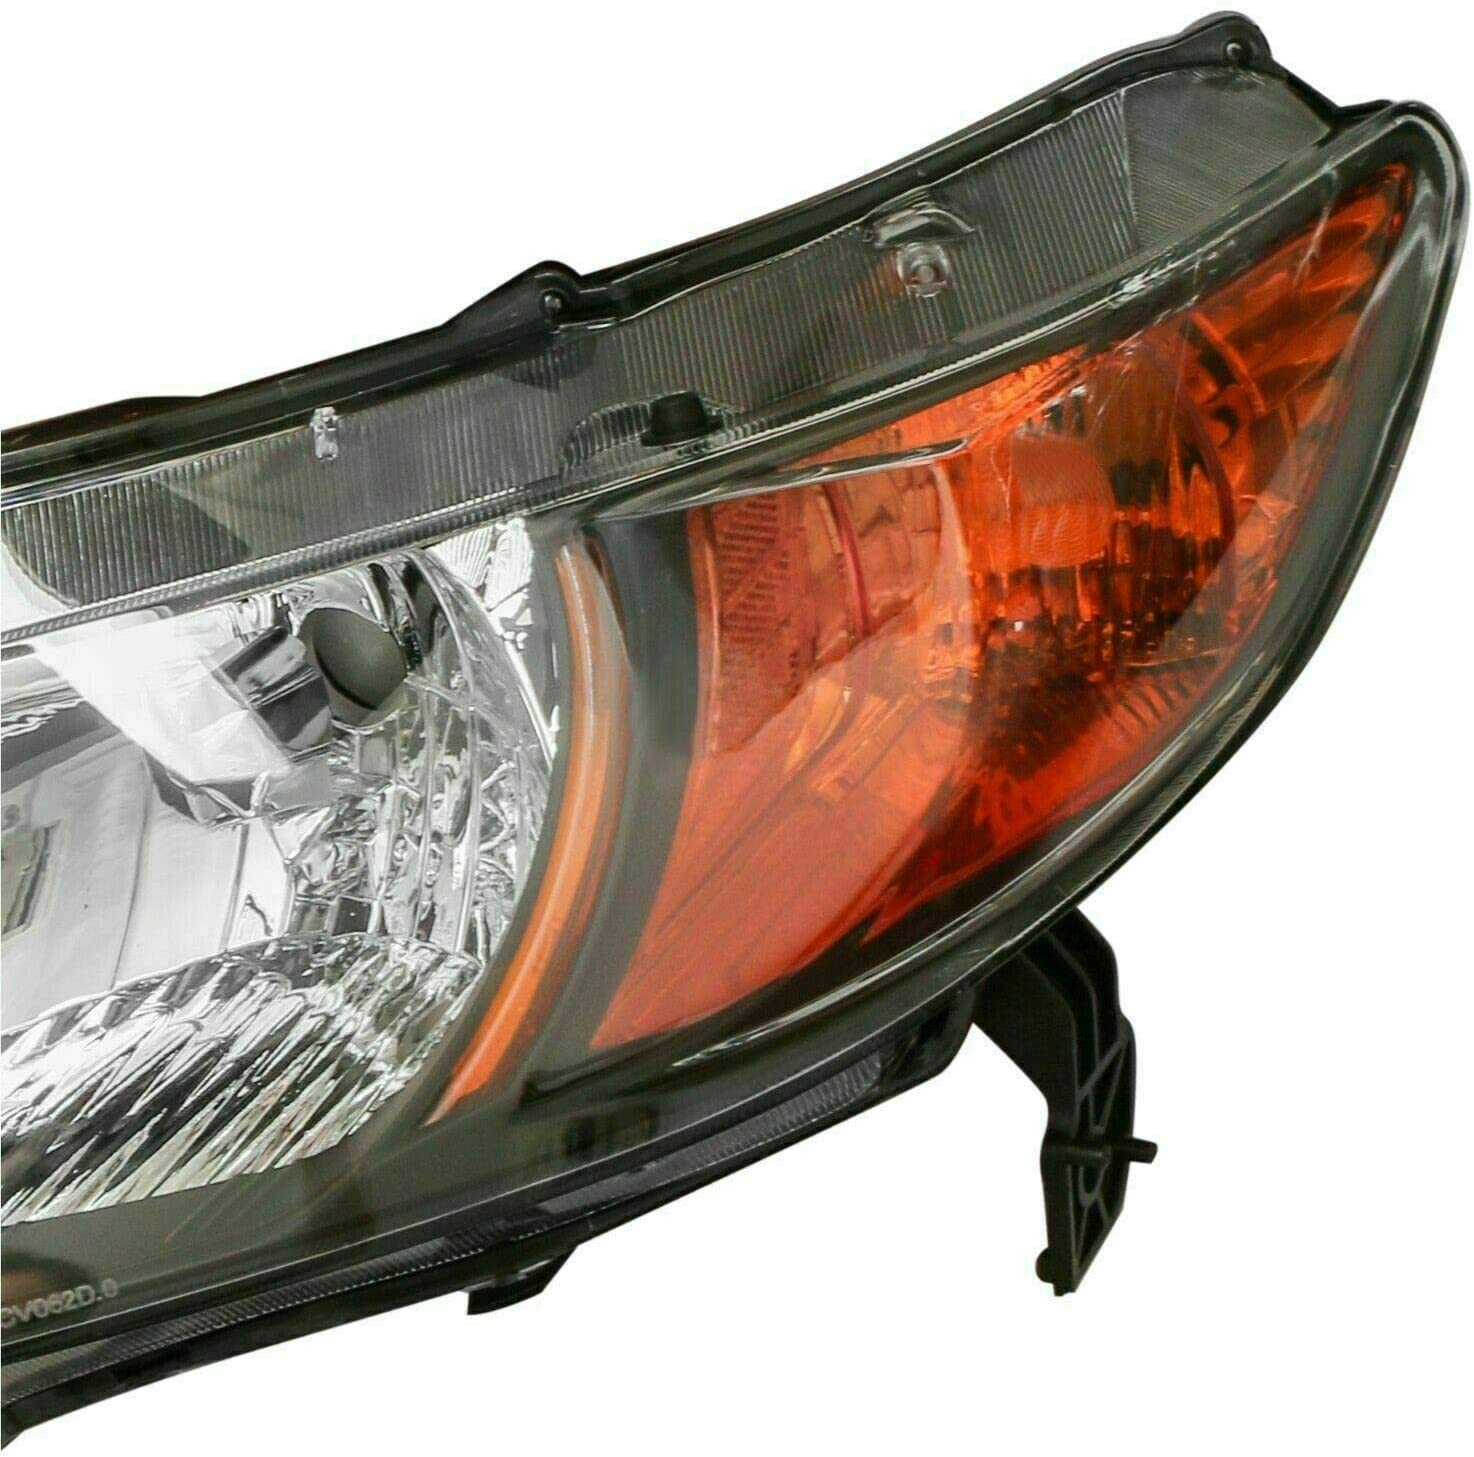 Set of 2 MOSTPLUS Headlight Assembly Compatible with 2006 2007 2008 2009 2010 2011 Honda Civic Coupe 2 Door Black Housing with Amber Reflector Front Lamp